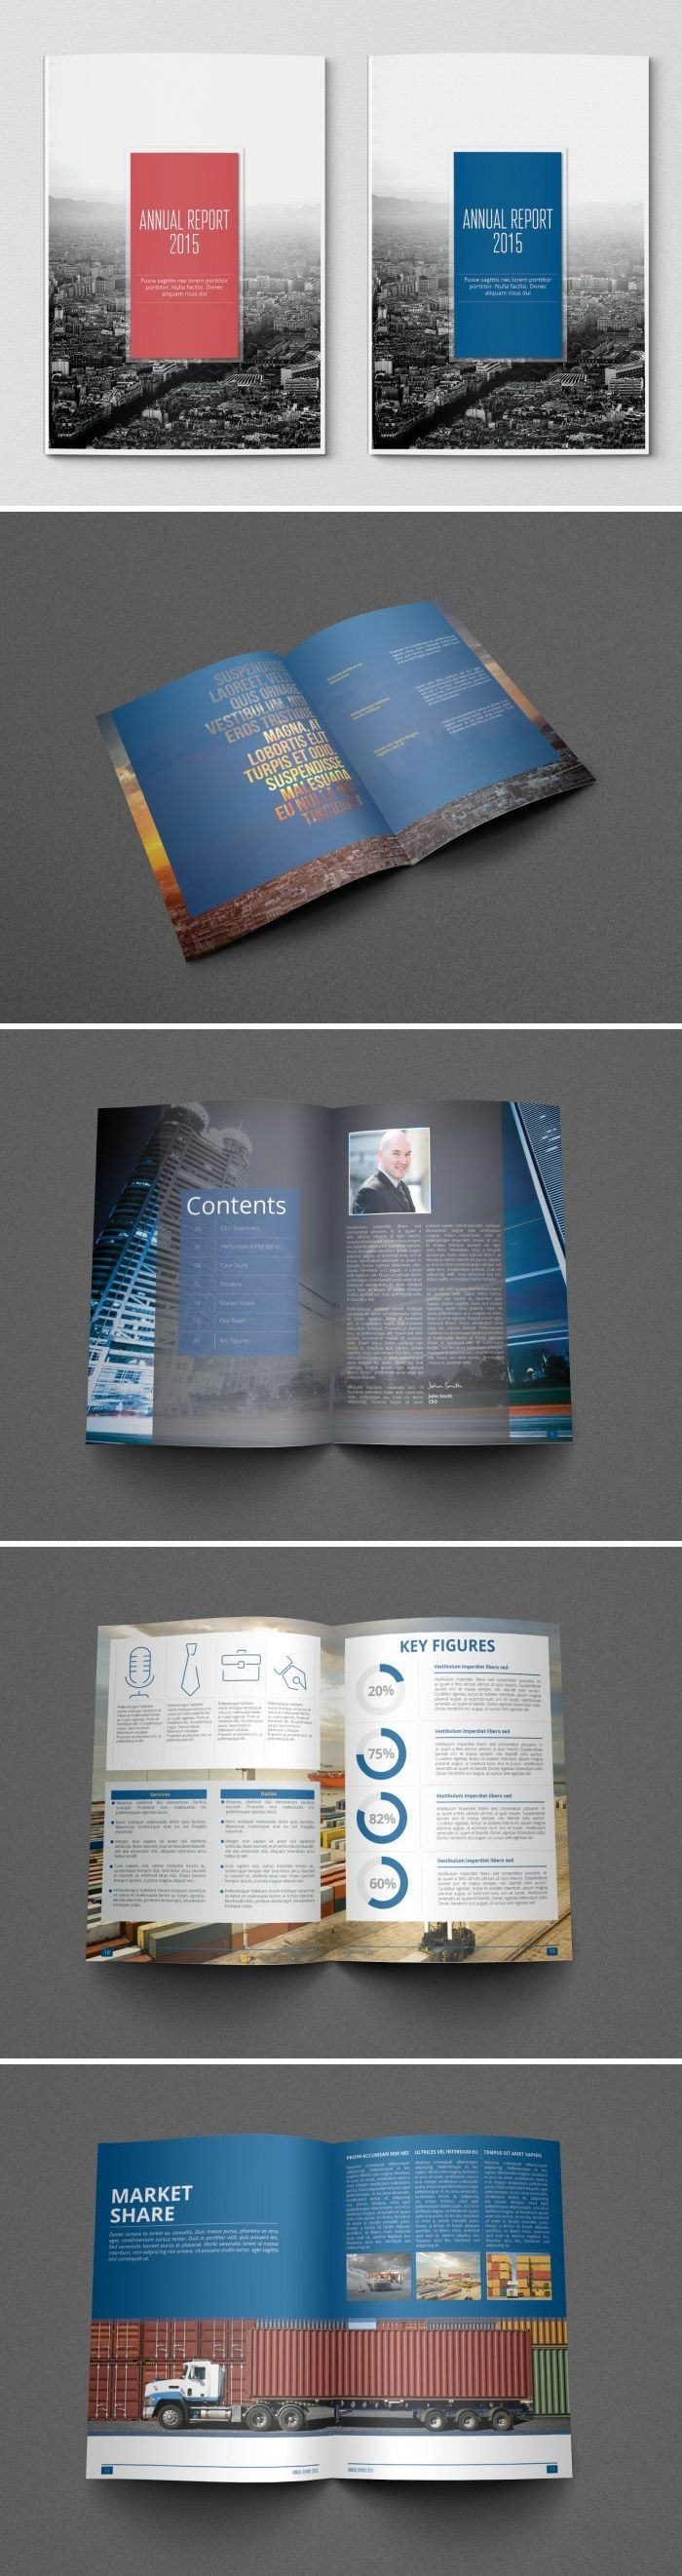 A Showcase of Annual Report Brochure Designs to Check Out ...